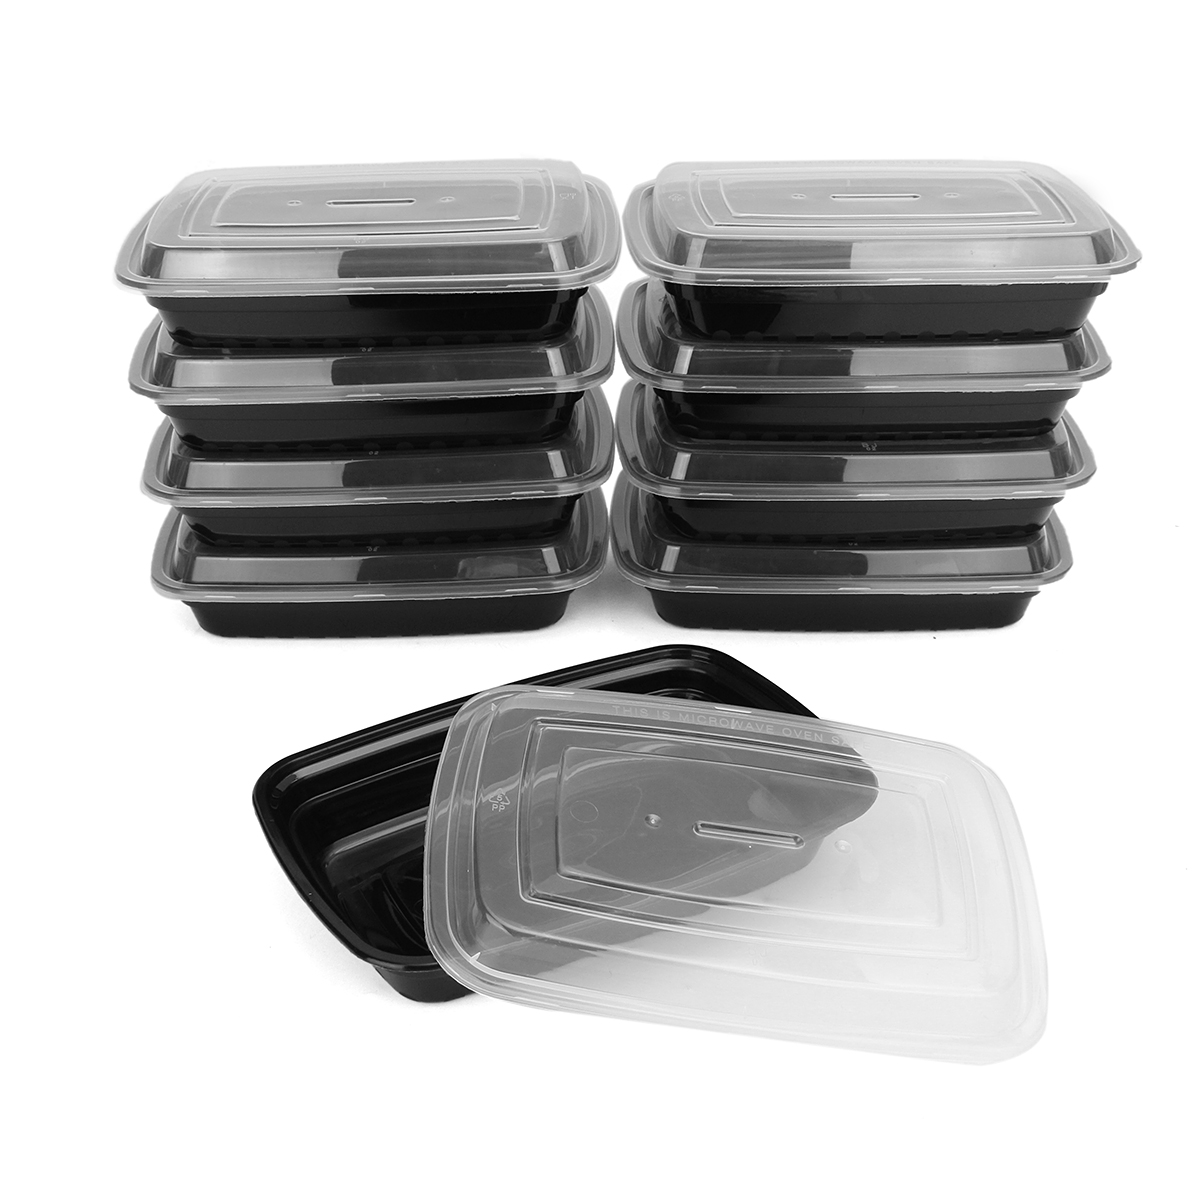 10Pcs 750ml Meal Prep Container Set Plastic Food Storag